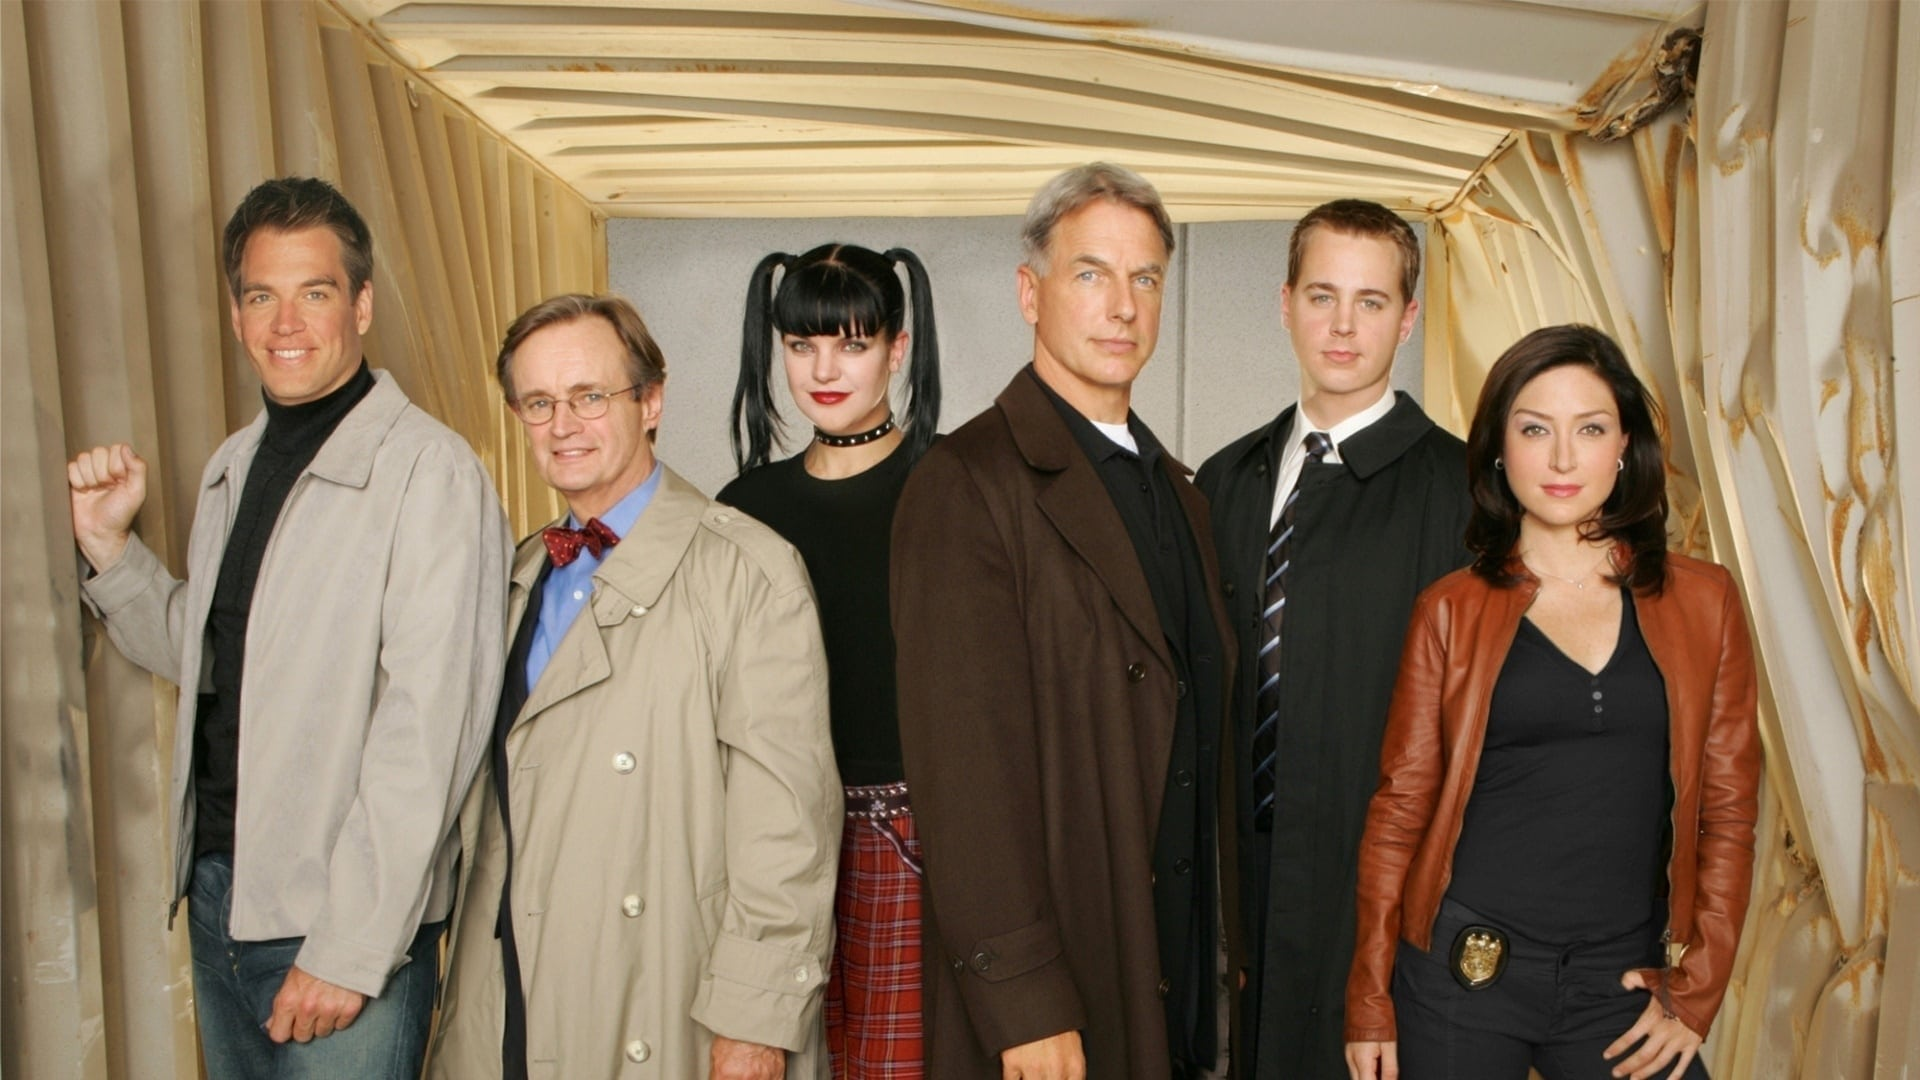 NCIS - Season 0 Episode 76 : Inside NCIS The Ship Set Afloat